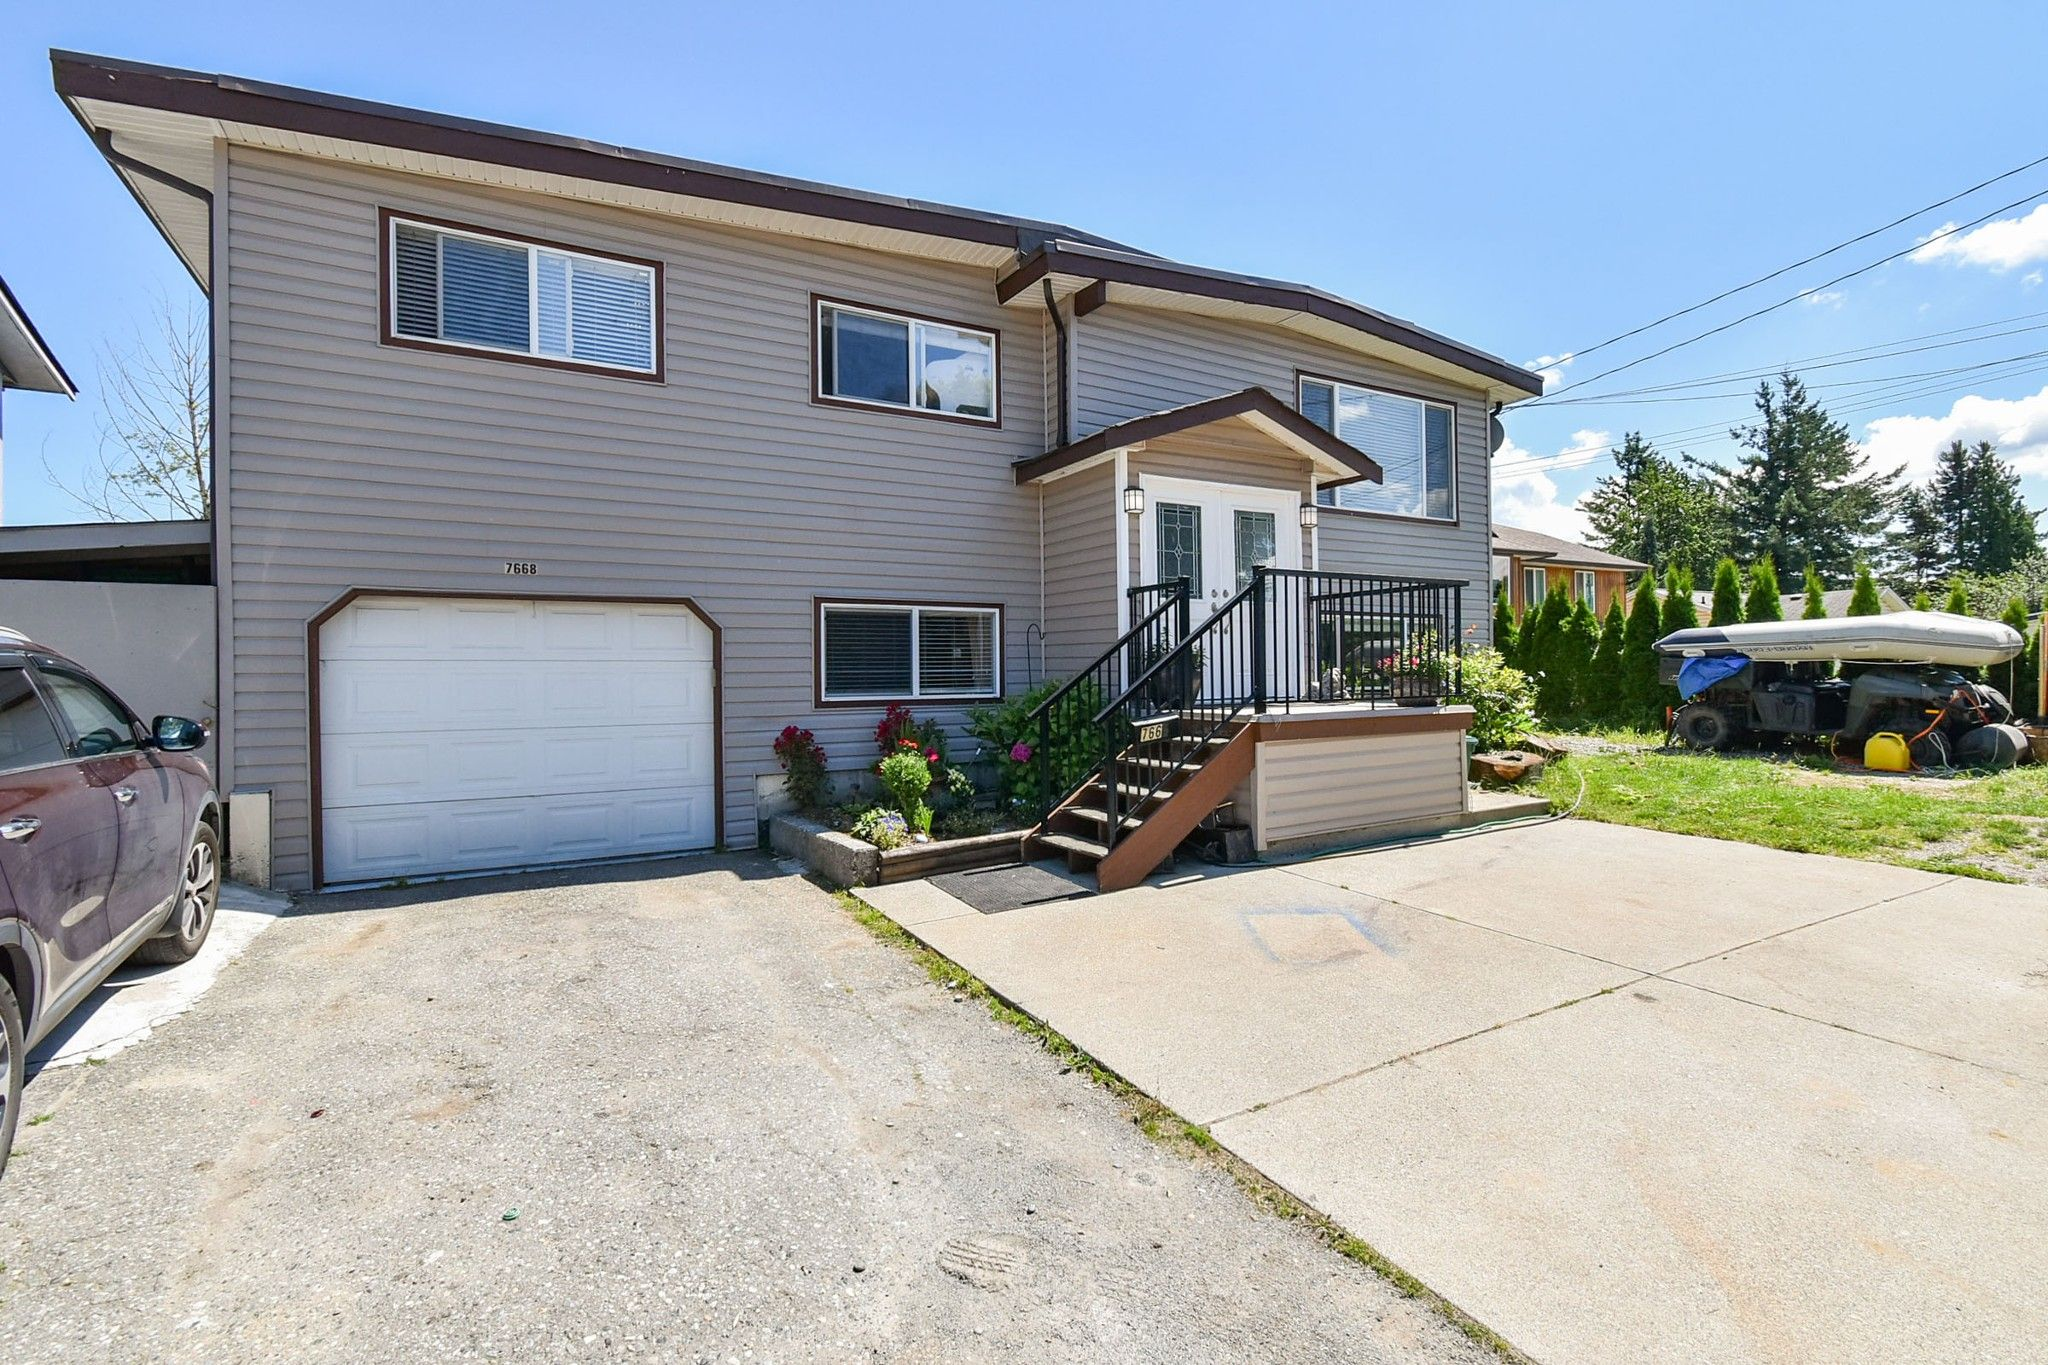 Main Photo: 7668 CEDAR STREET in Mission: Mission BC House for sale : MLS®# R2474915